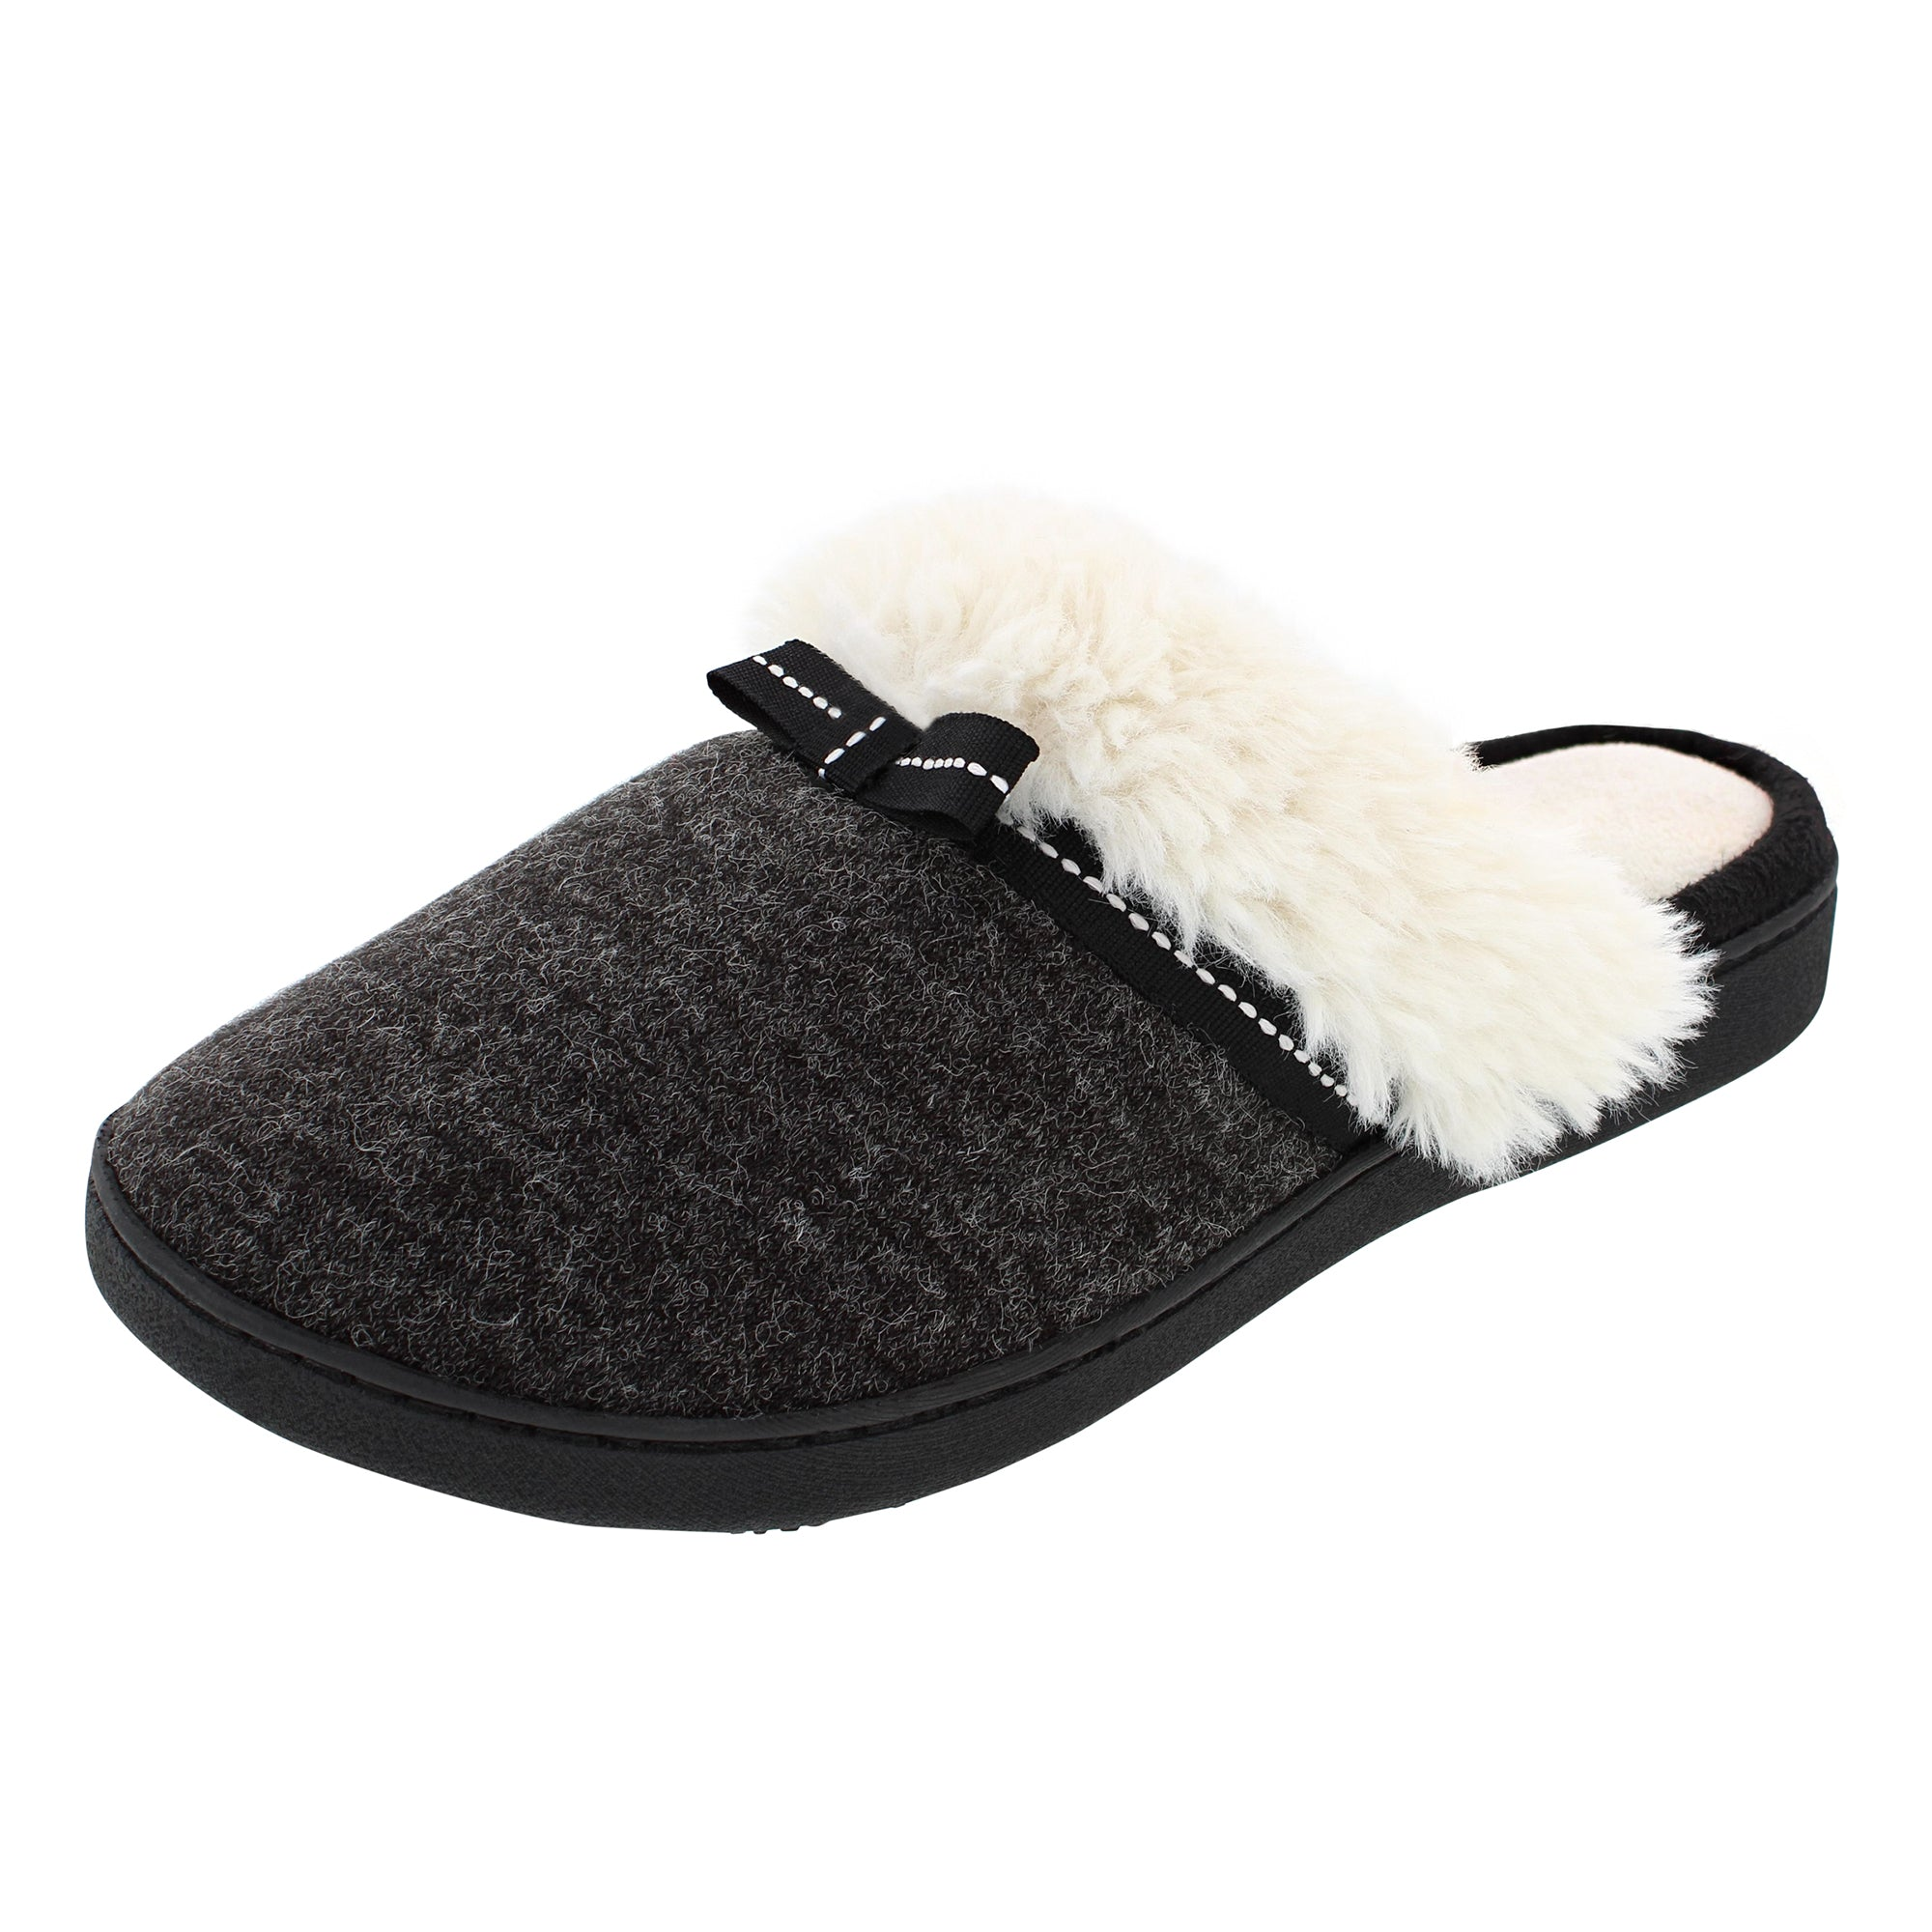 Isotoner Heathered Knit Clog with Soft Sherpa Cuff